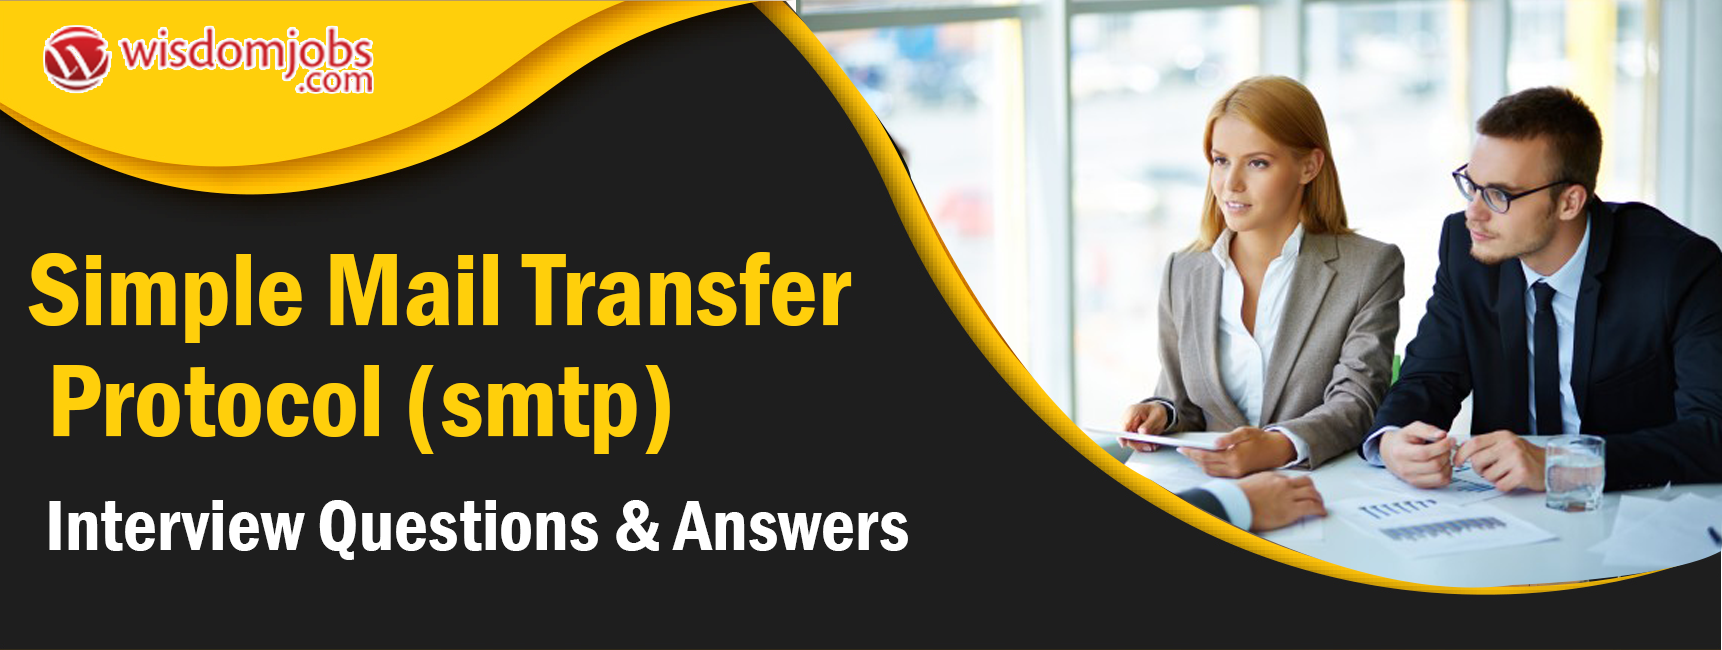 Simple Mail Transfer Protocol SMTP Interview Questions